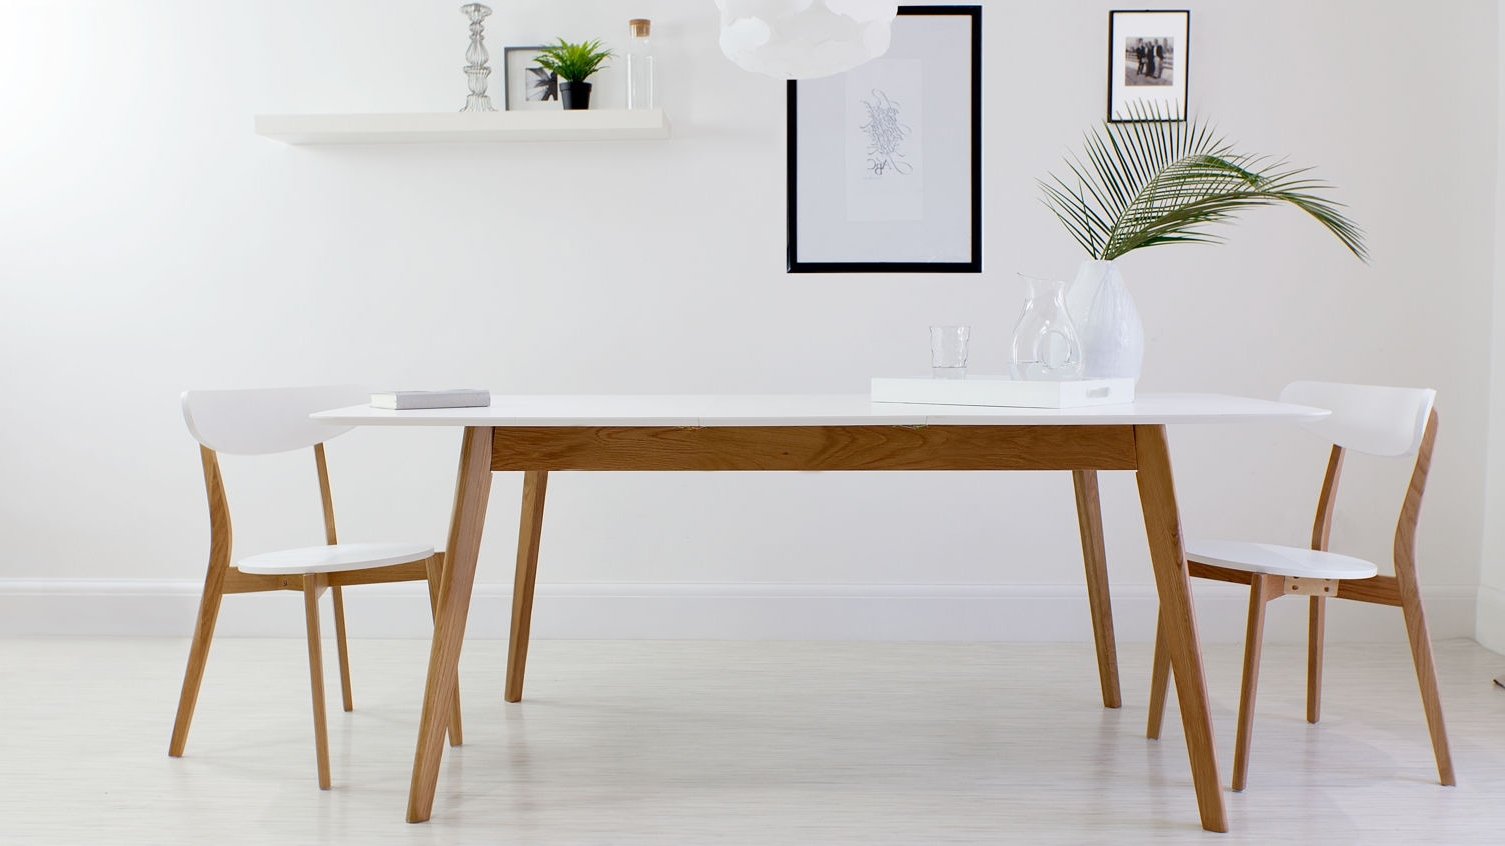 Next White Dining Tables For Most Recent Contemporary White Dining Table Best For Small Room (View 12 of 25)